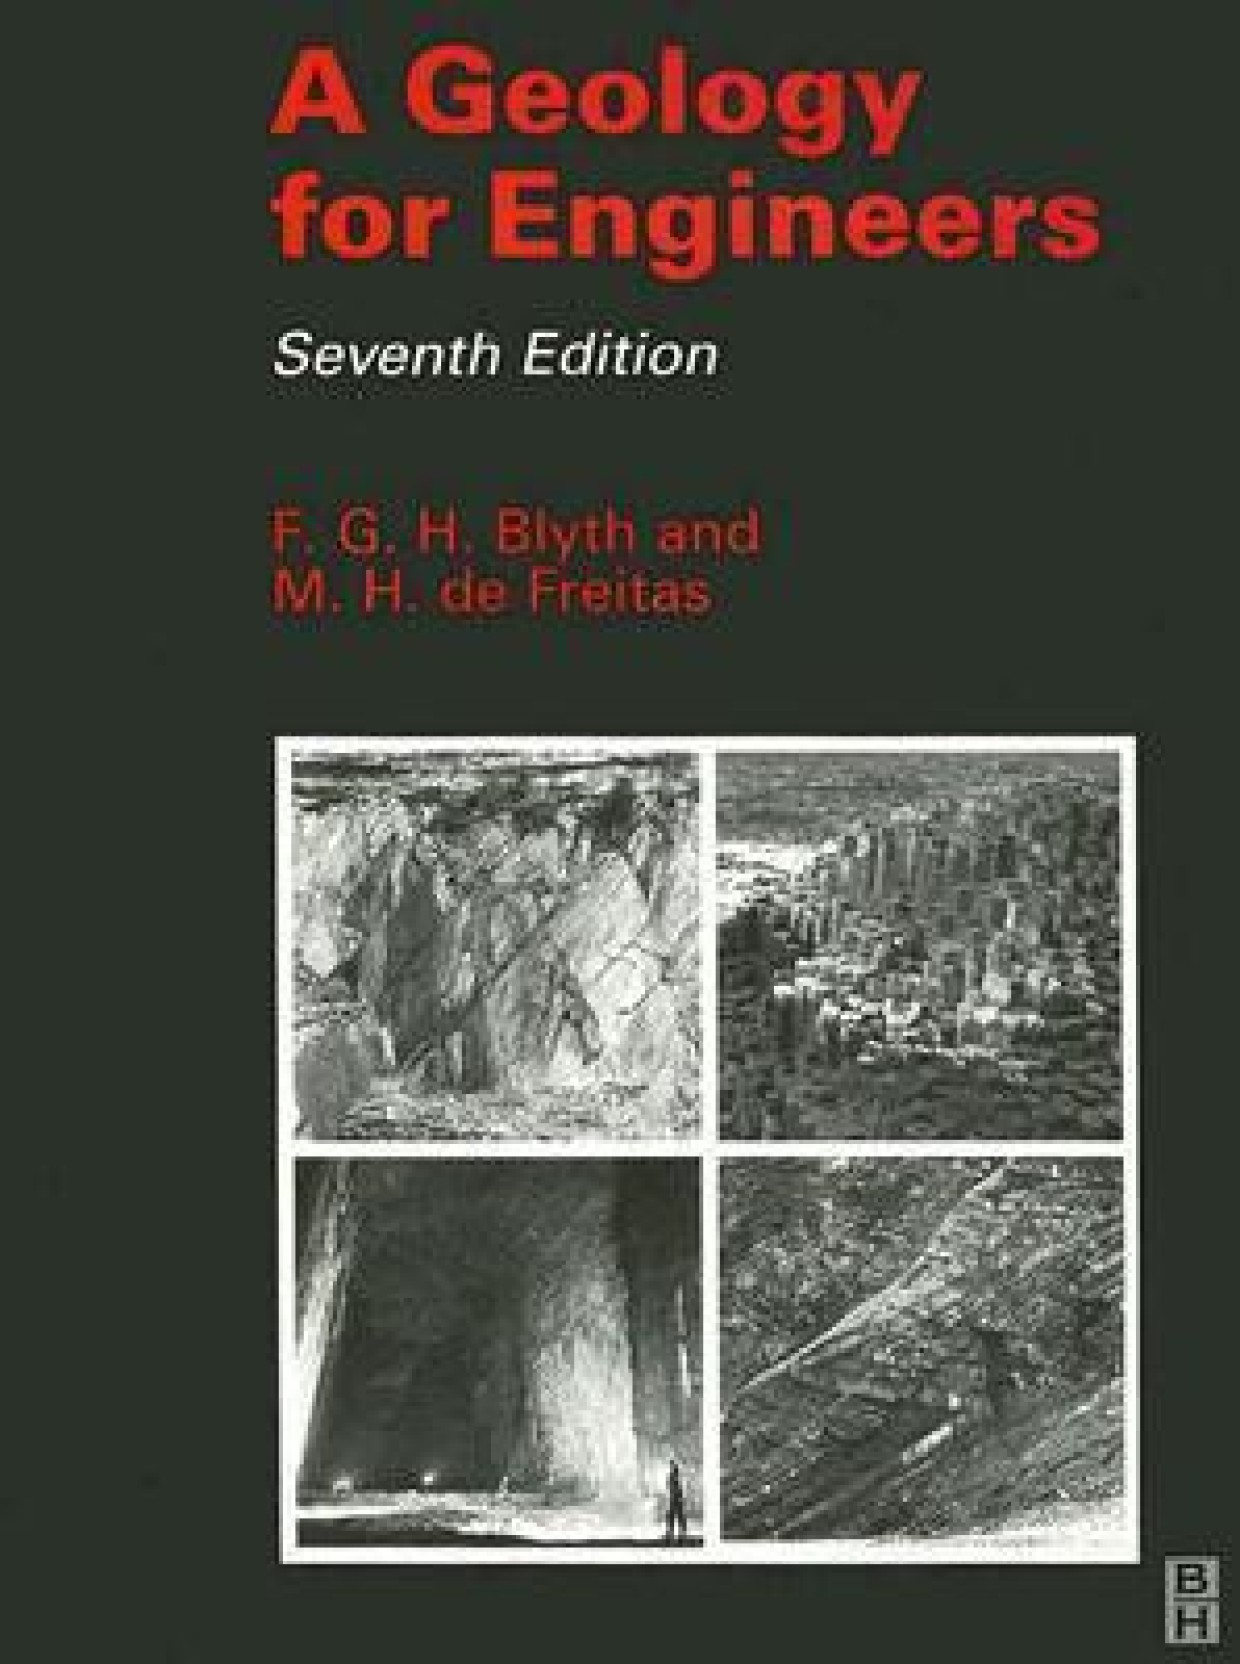 Geology for engineers seventh edition by blyth f g h authorde freitas m h author english butterworth heinemann paperback edition 7th 7th edition